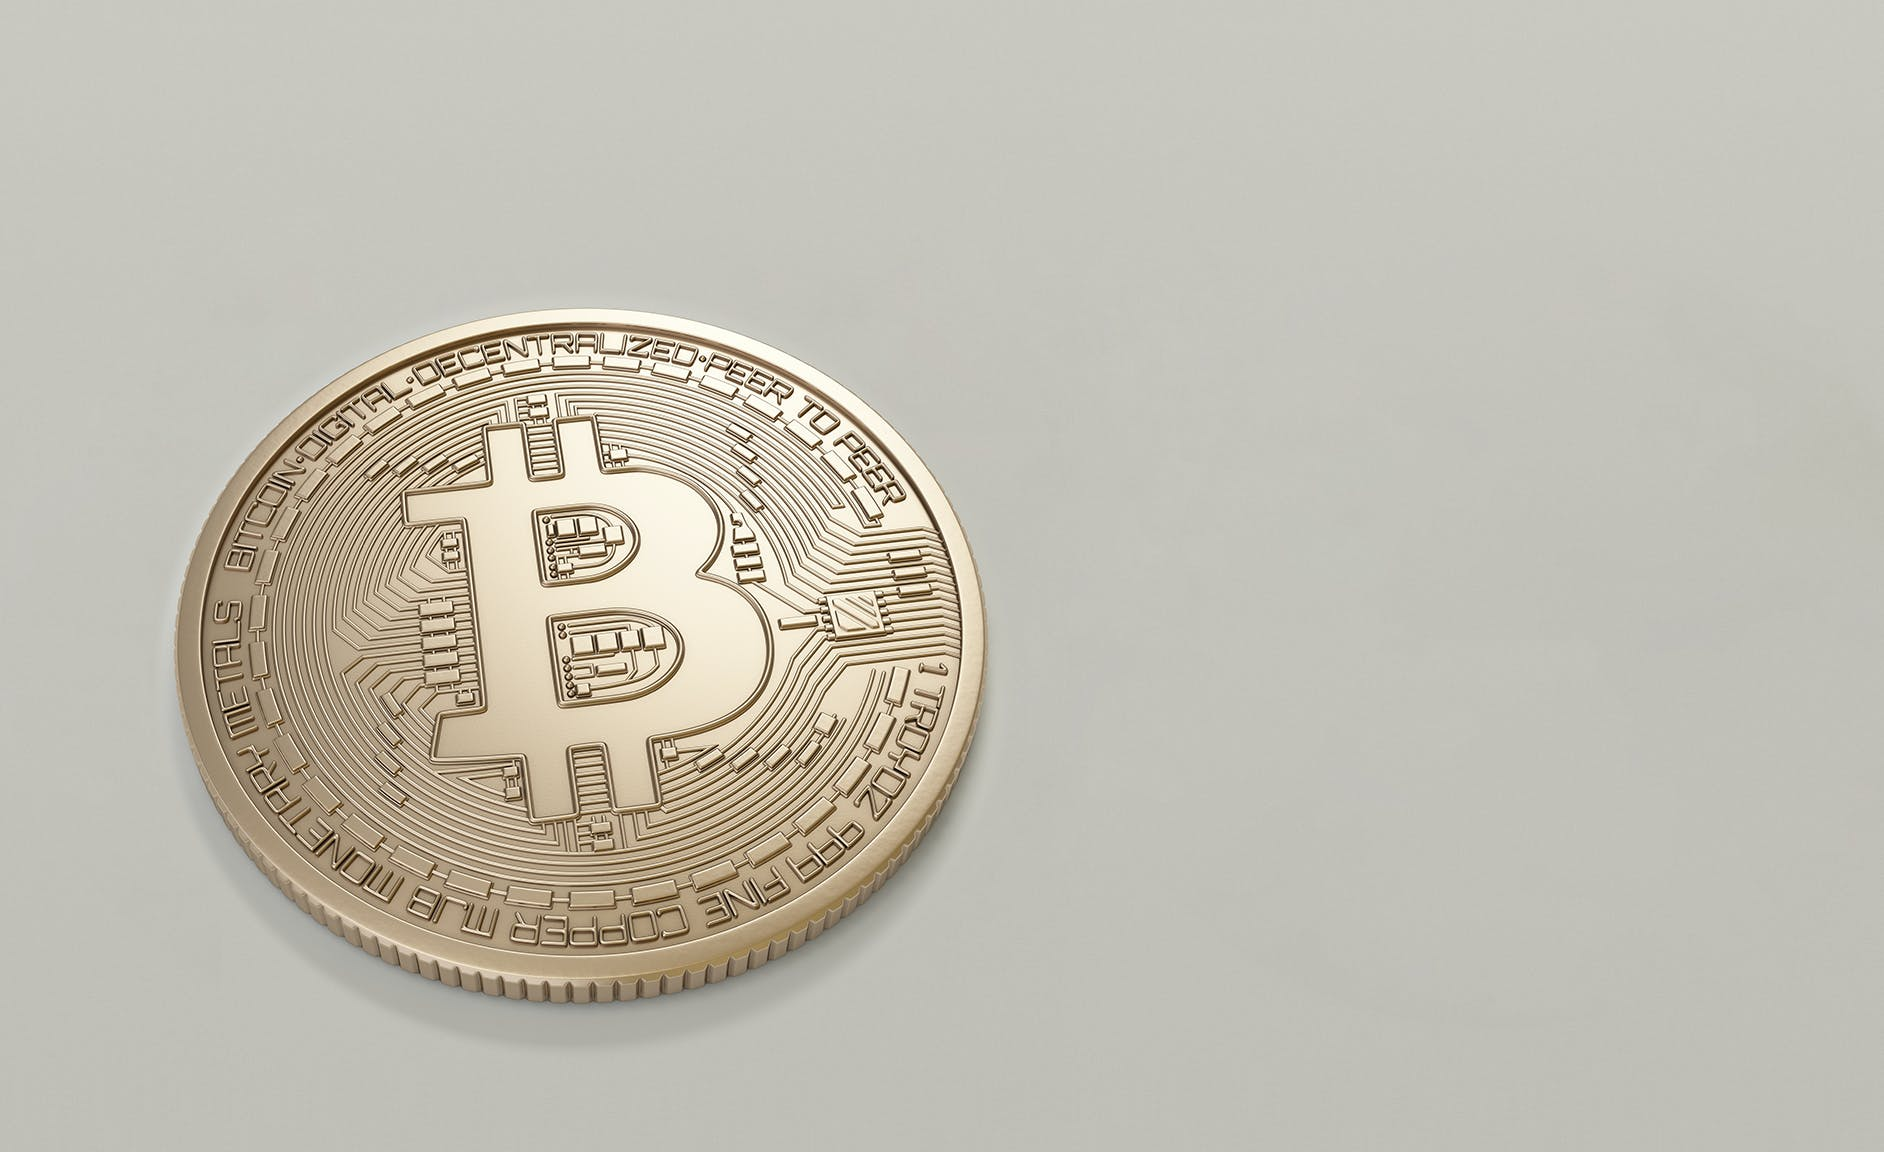 Round Gold-colored Bitcoin